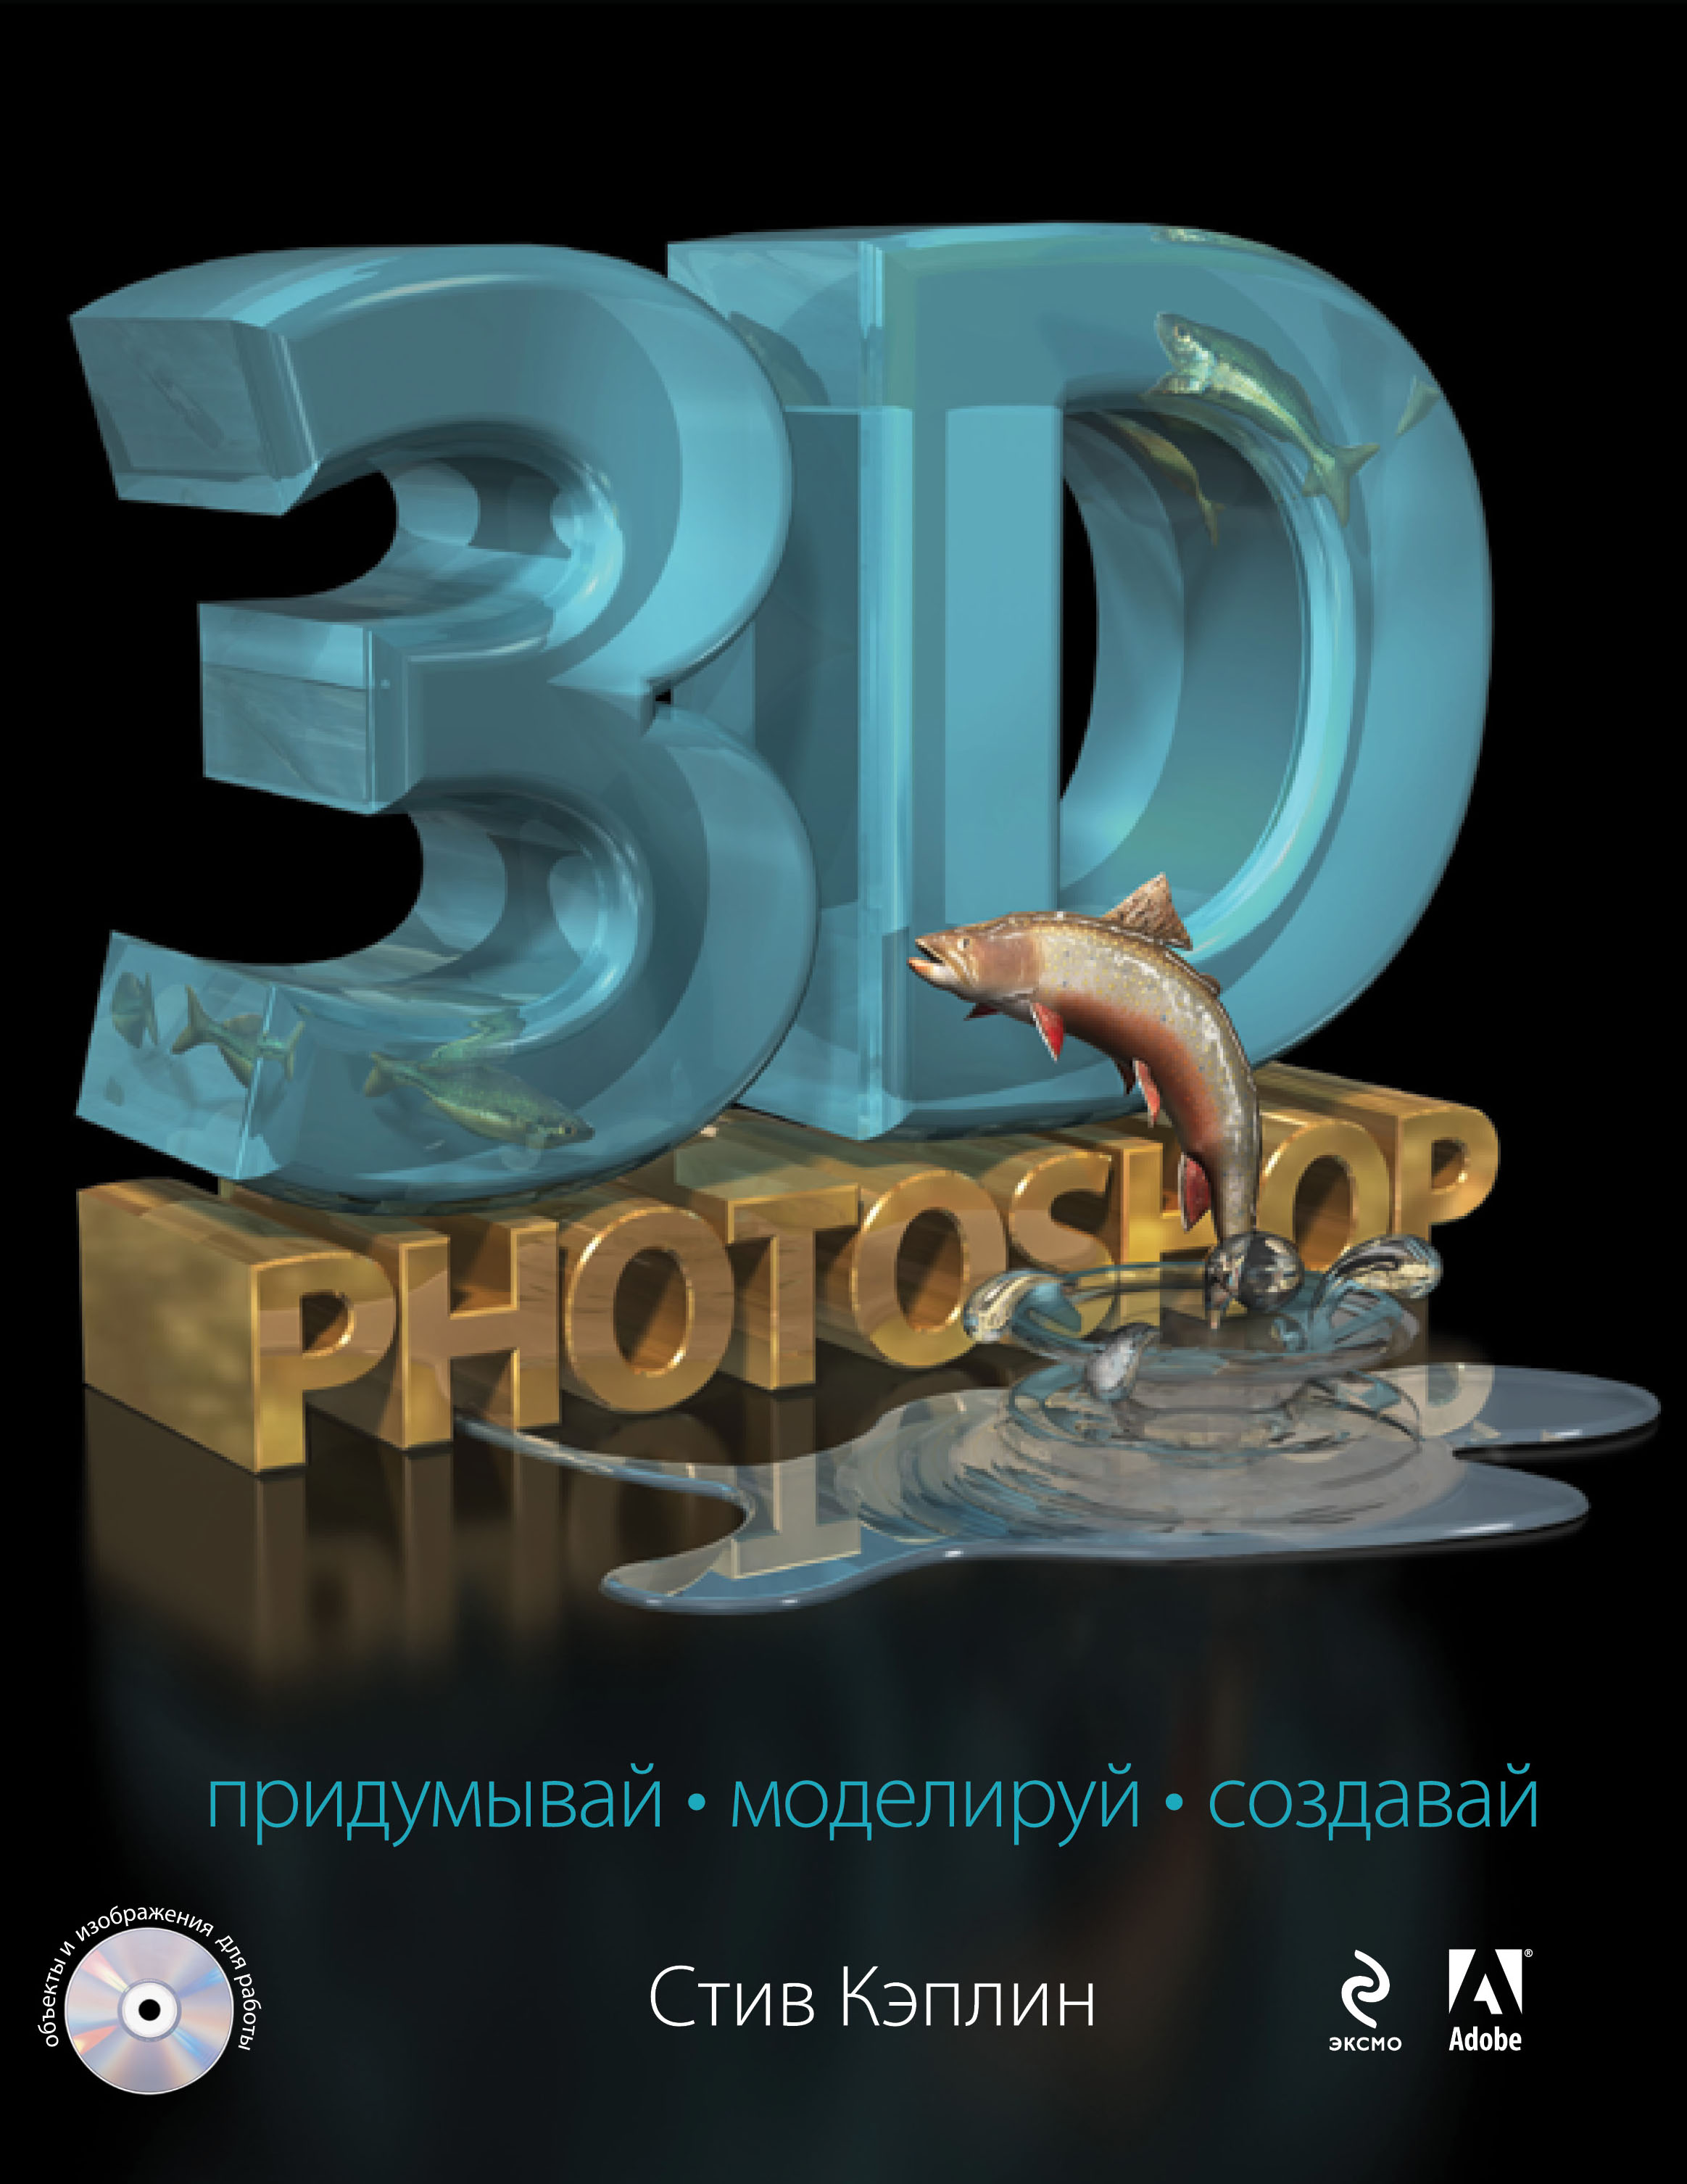 Кэплин Стив 3D Photoshop (+CD) - страница 0